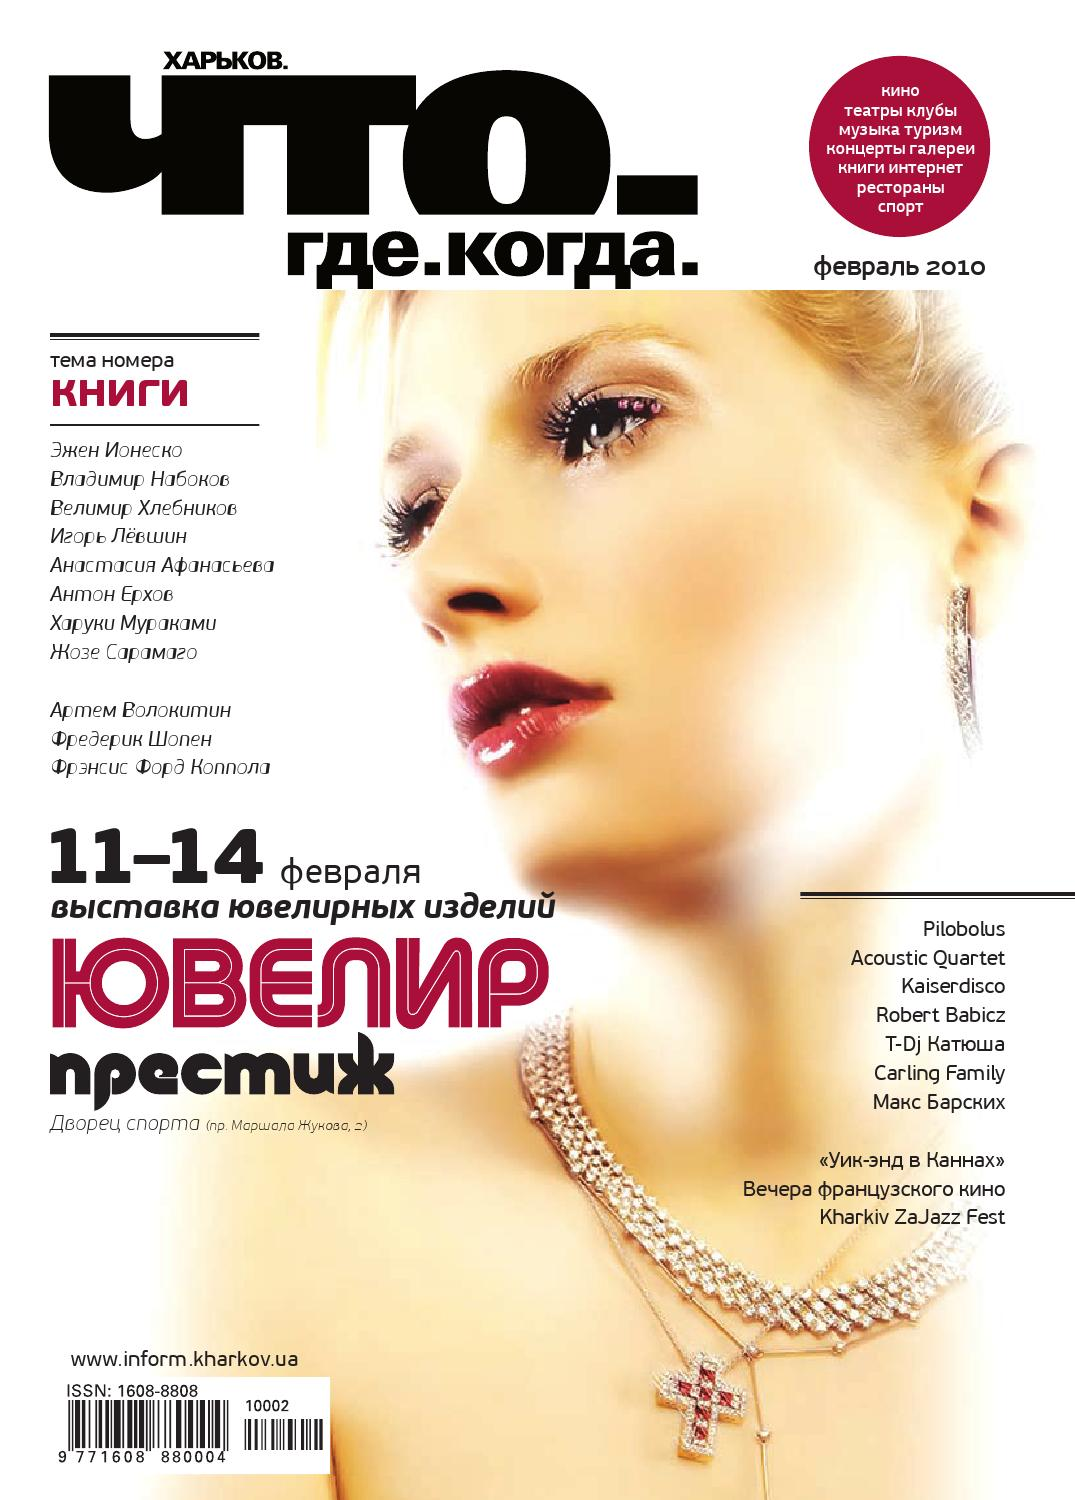 февраль 2010 by Chto Gde - issuu e324a27450a